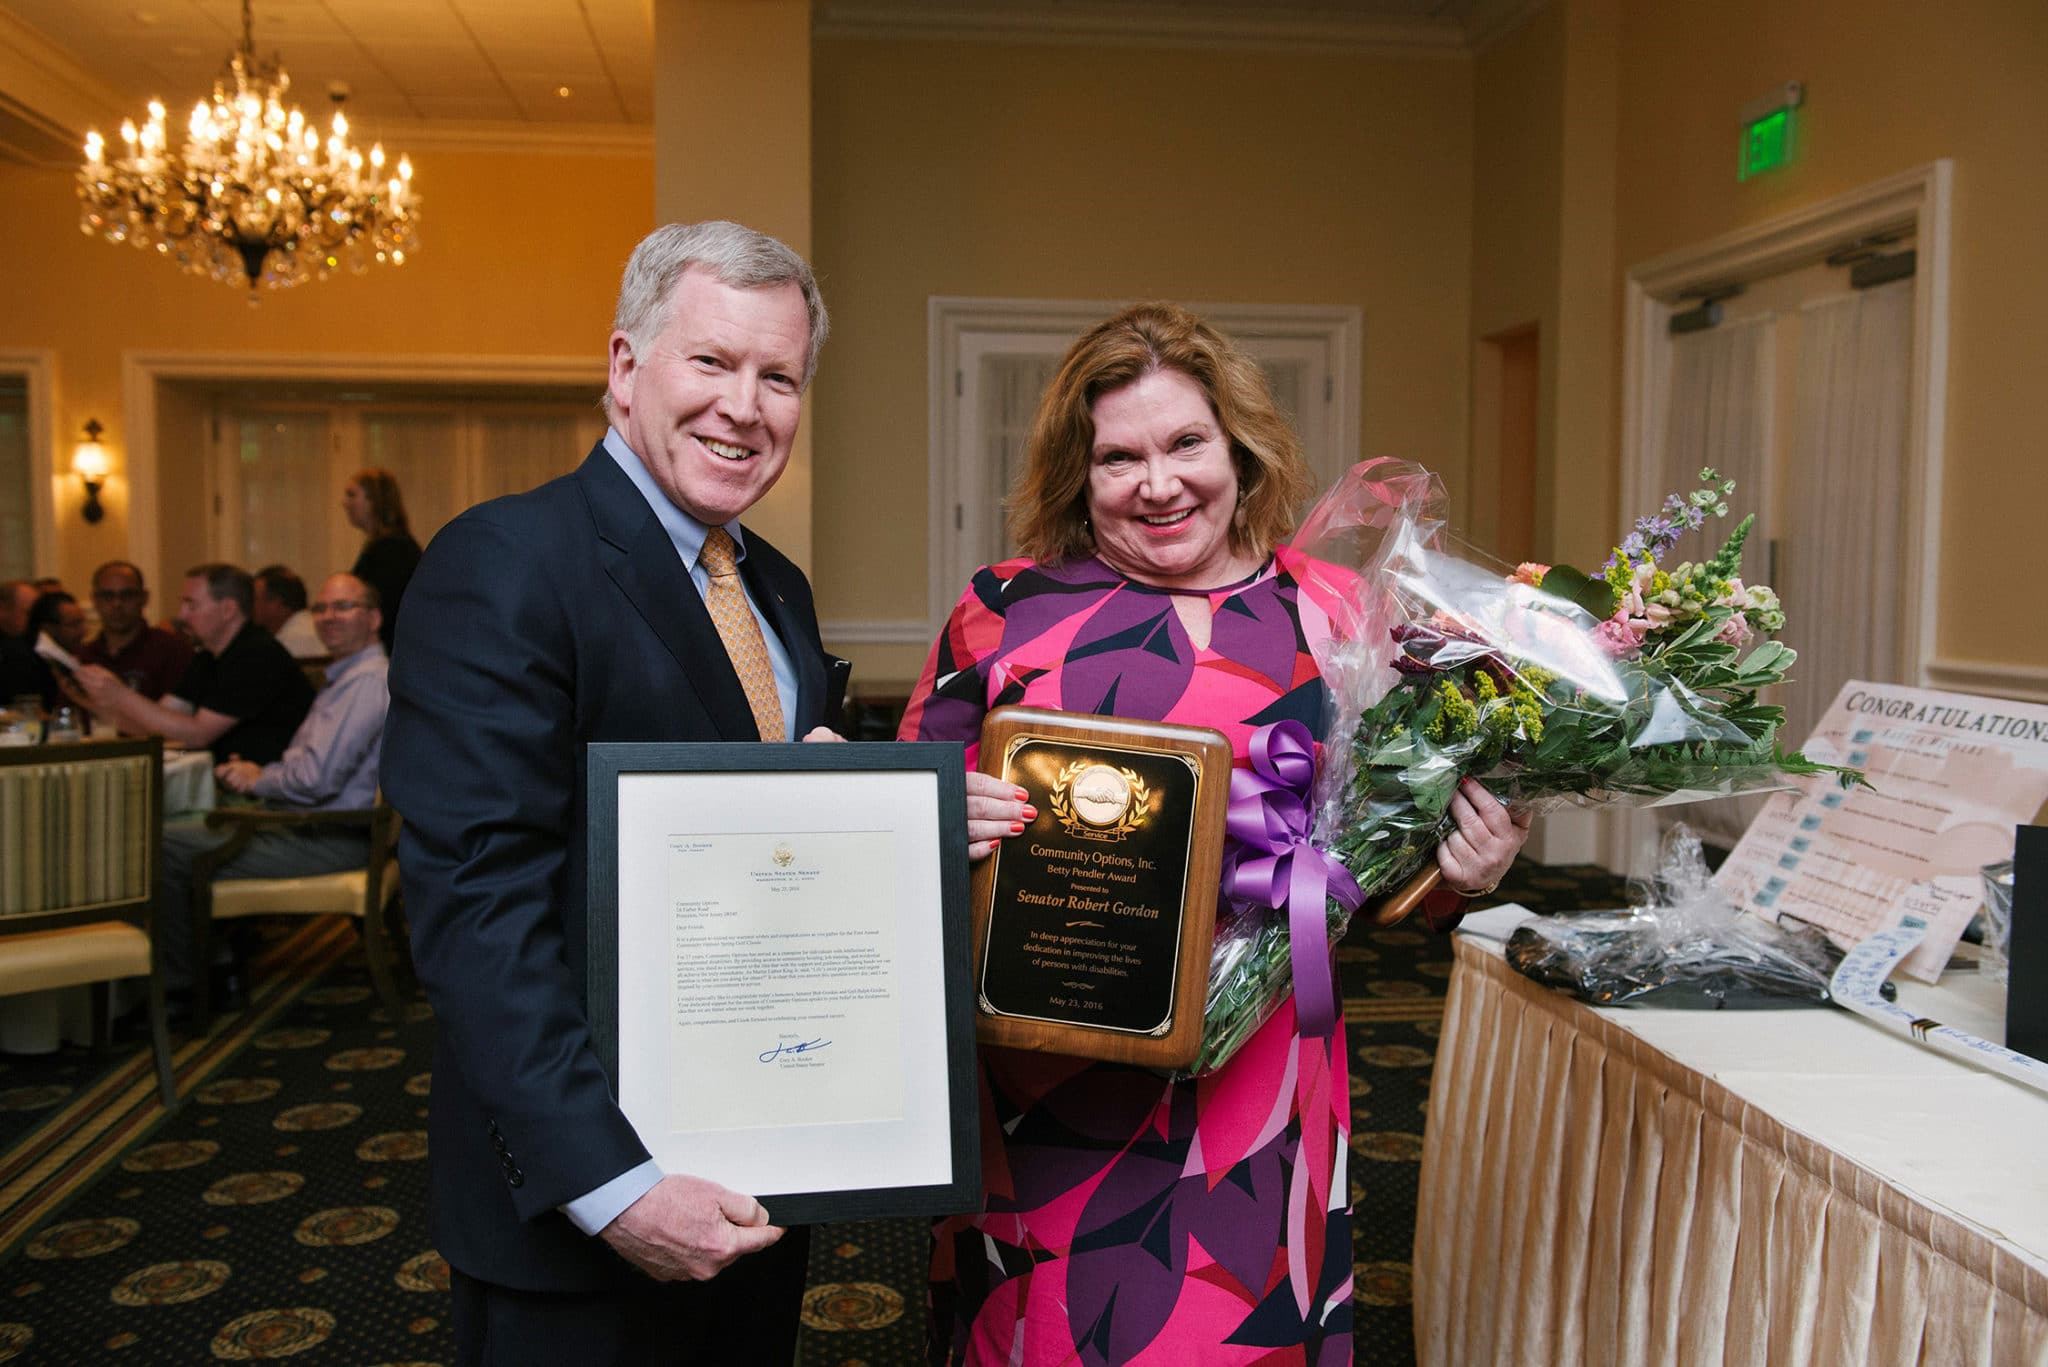 Gail and Senator Gordon were honored during Community Options, Inc.'s spring iMatter Golf Classic at the Alpine Country Club in Demarest on May 23, 2016.